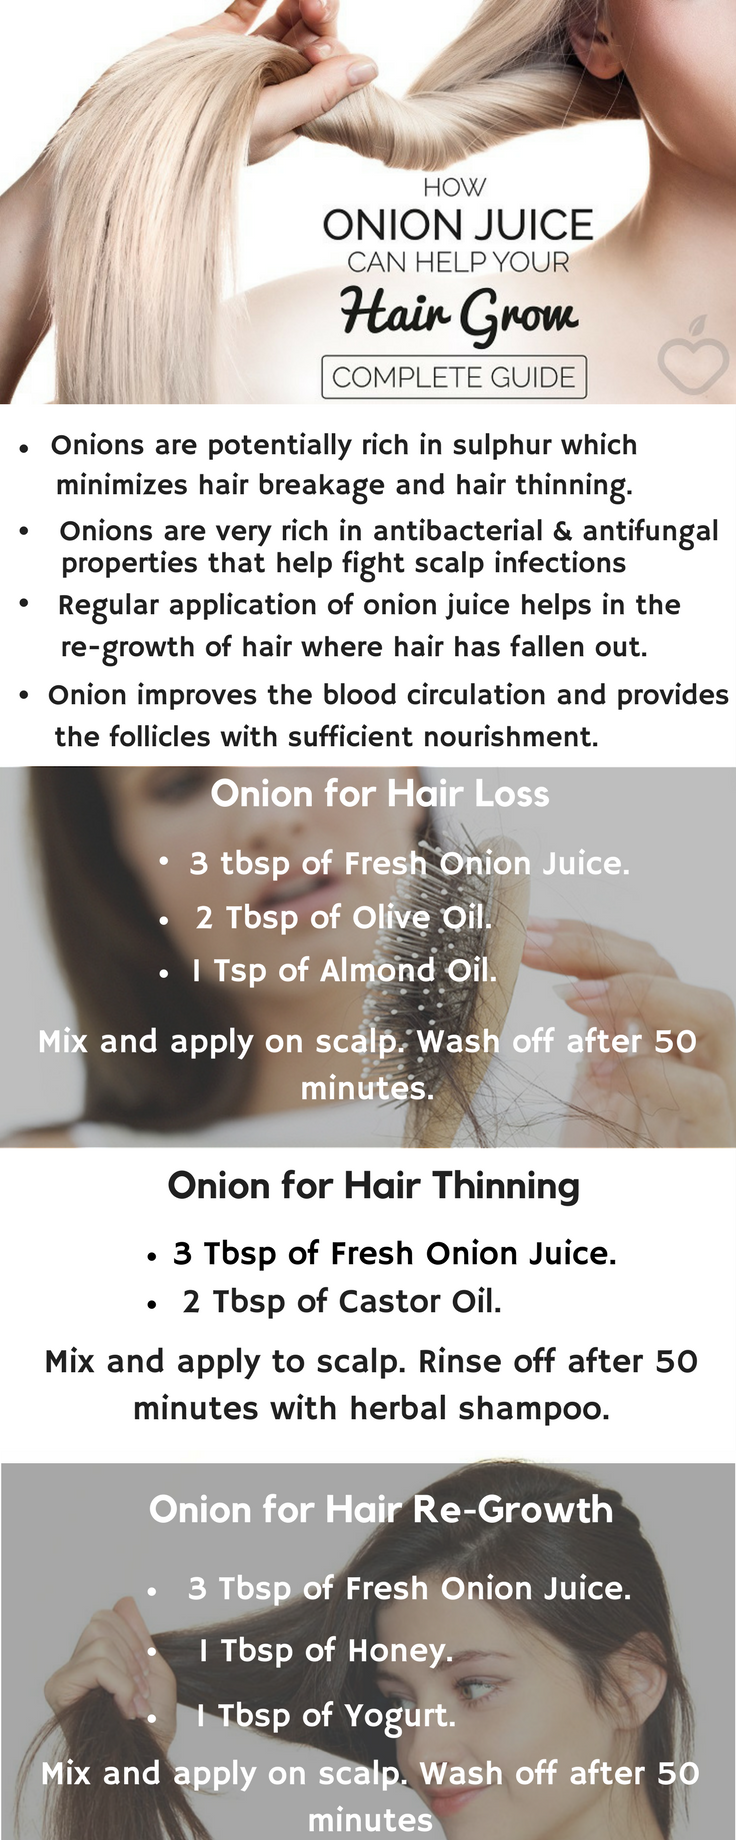 Onion for Hair Loss, Hair Thinning and Hair Re-Growth